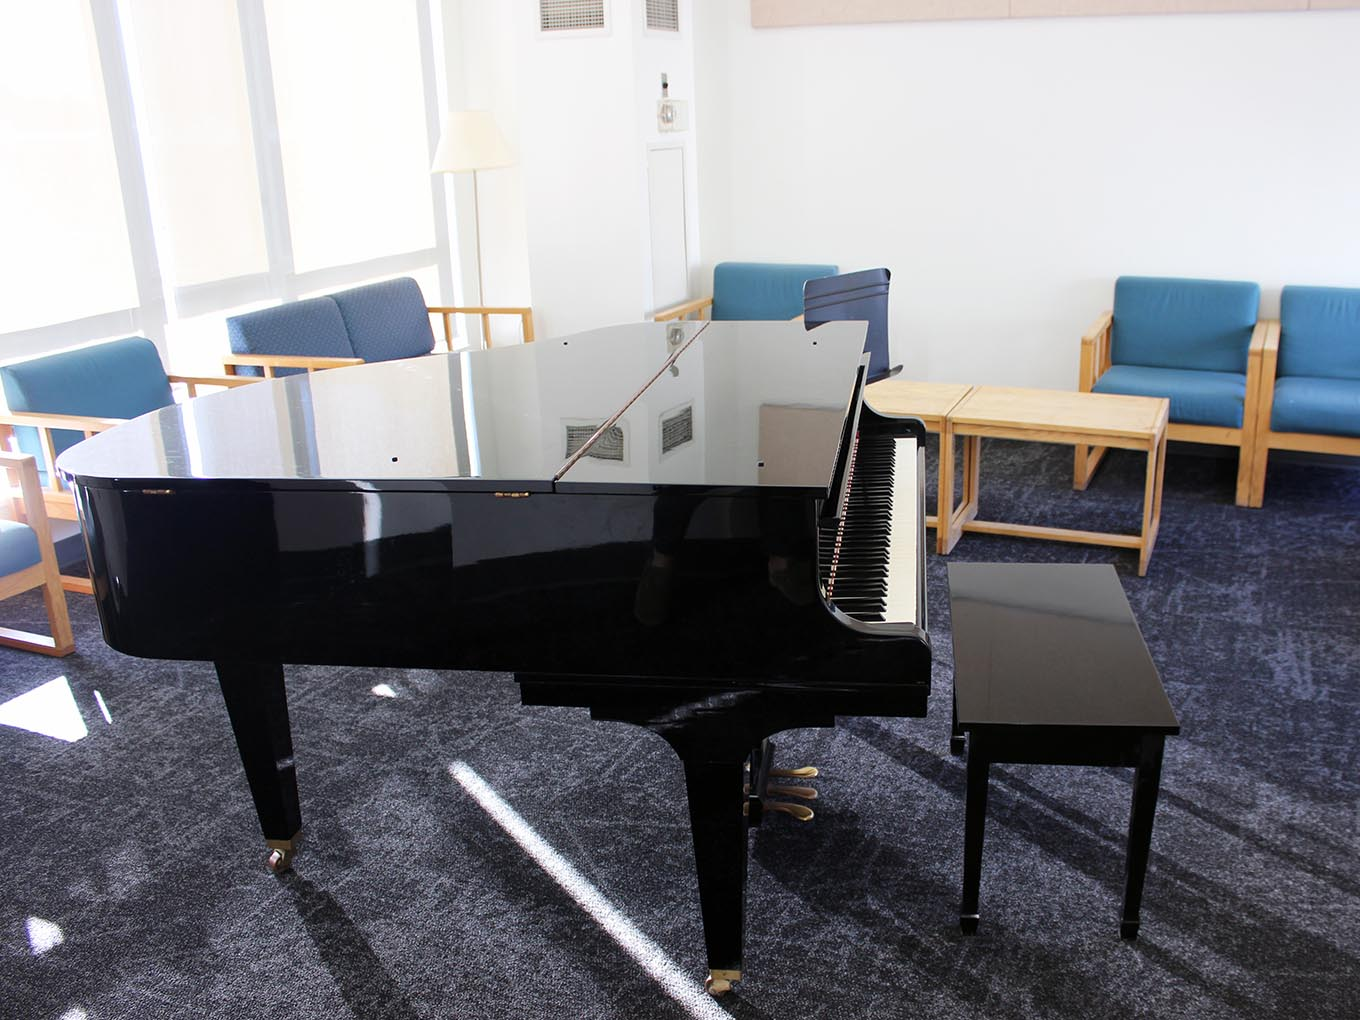 Suites and Amenities - Music room